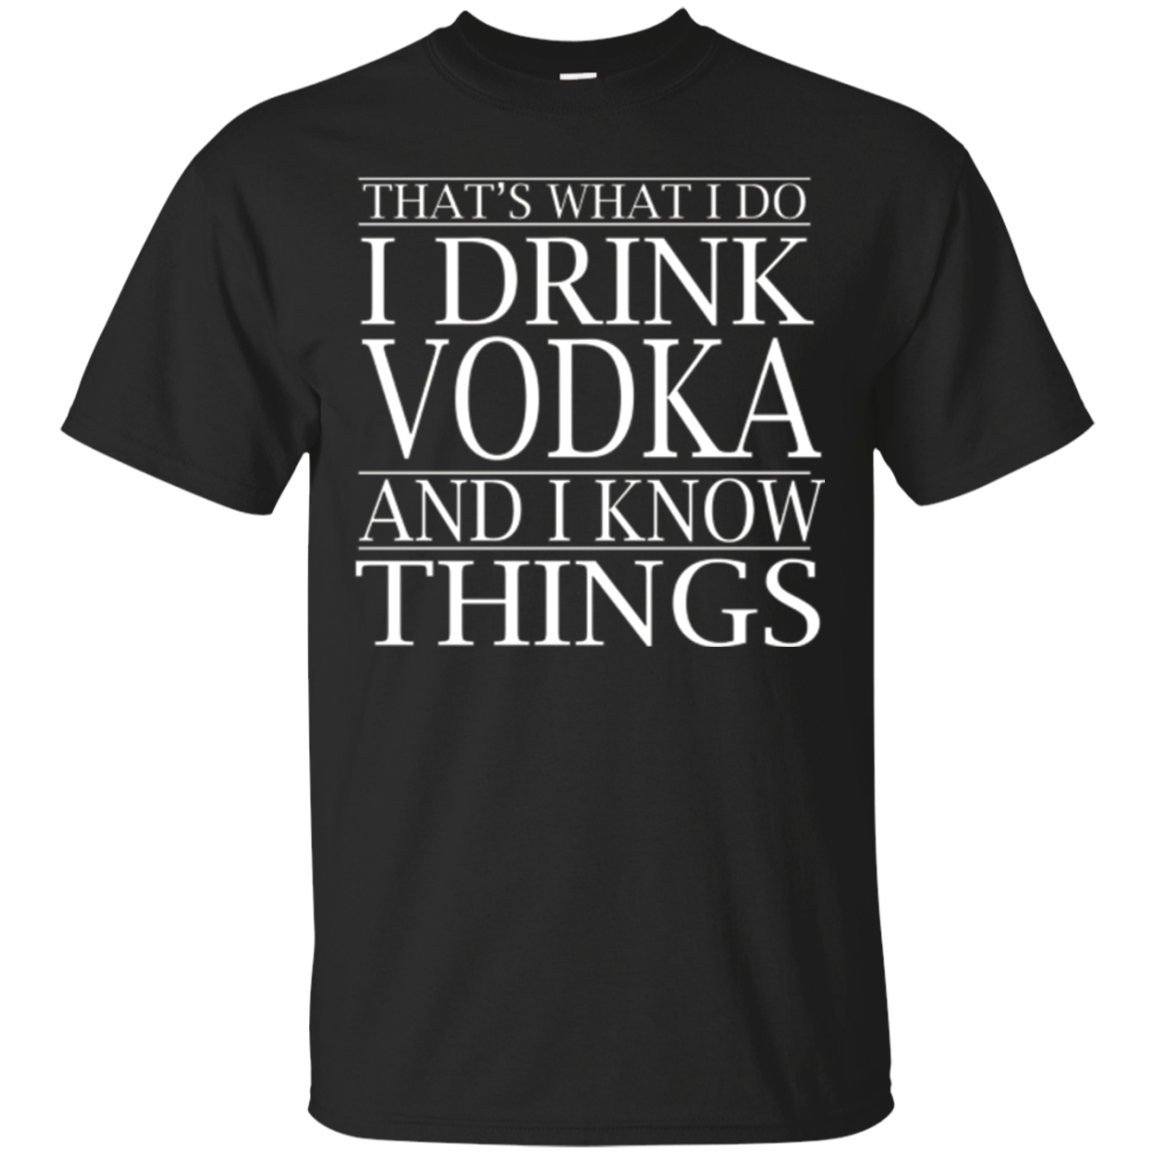 Storecastle: That's What I Do I Drink Vodka Funny T-Shirt